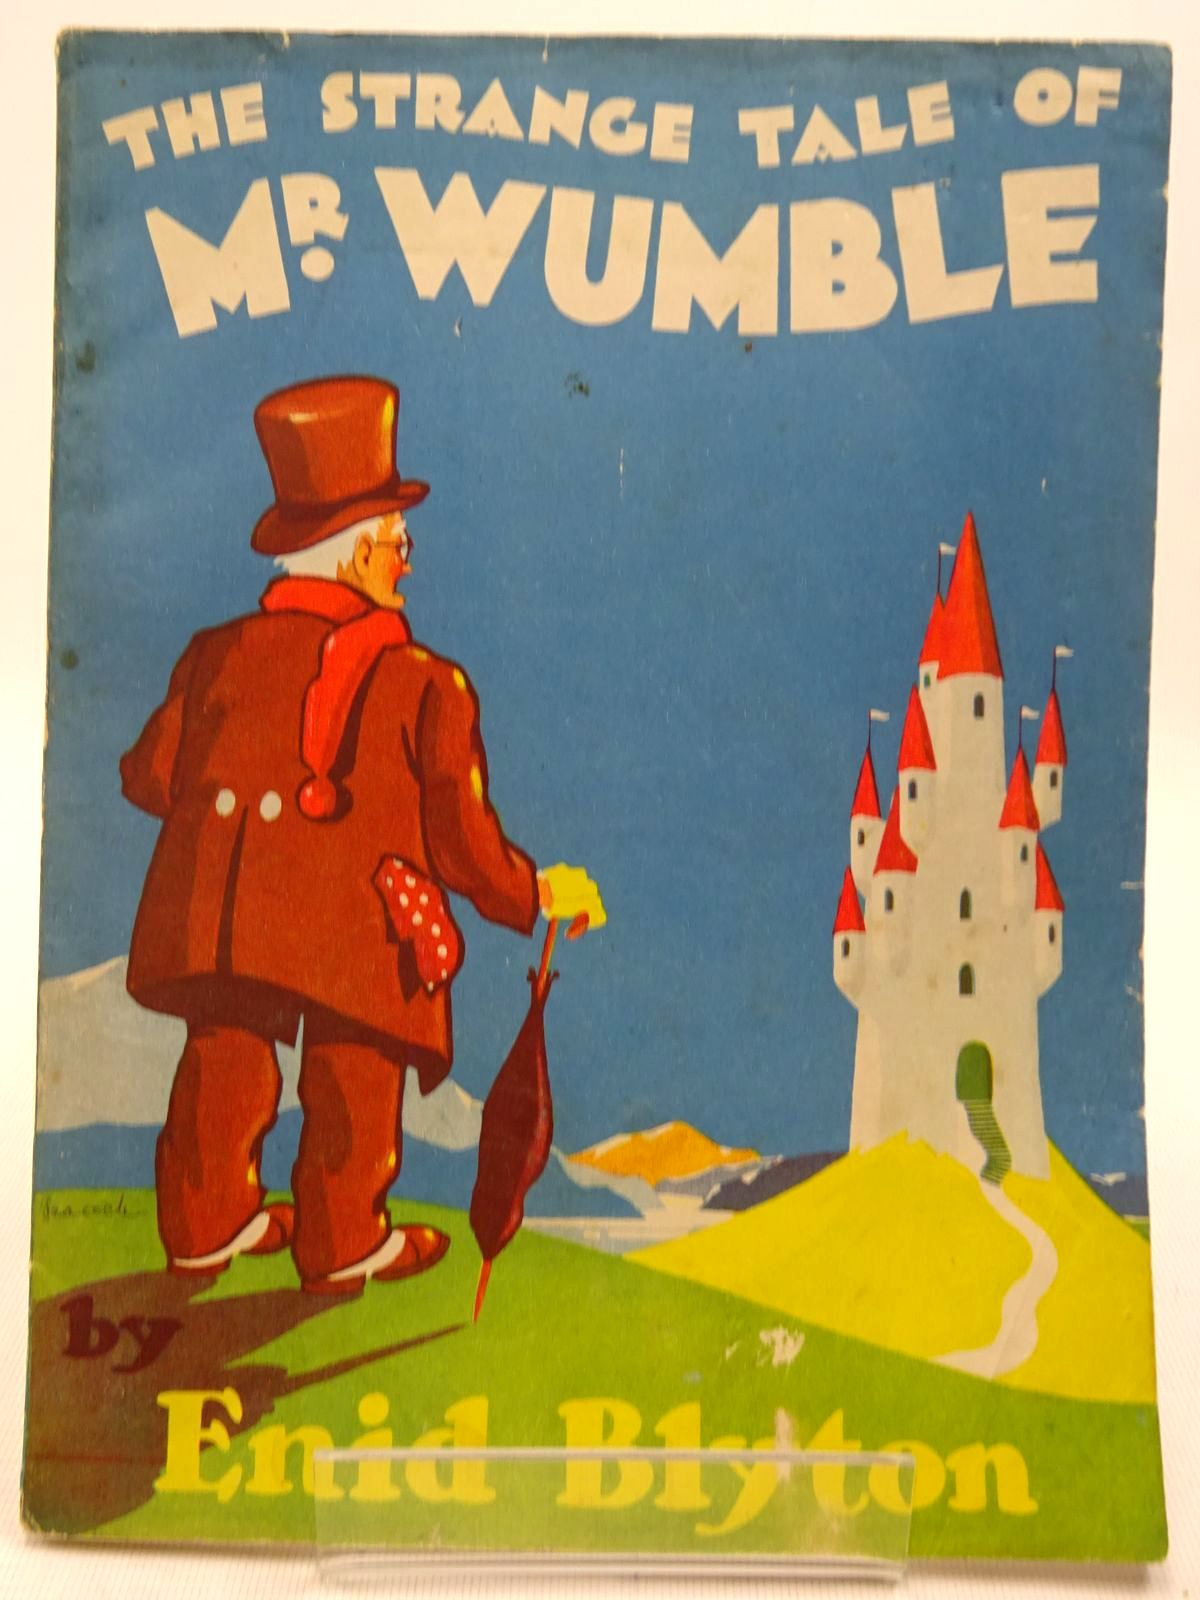 Photo of THE STRANGE TALE OF MR. WUMBLE written by Blyton, Enid published by J. Coker & Co. Ltd. (STOCK CODE: 2128866)  for sale by Stella & Rose's Books